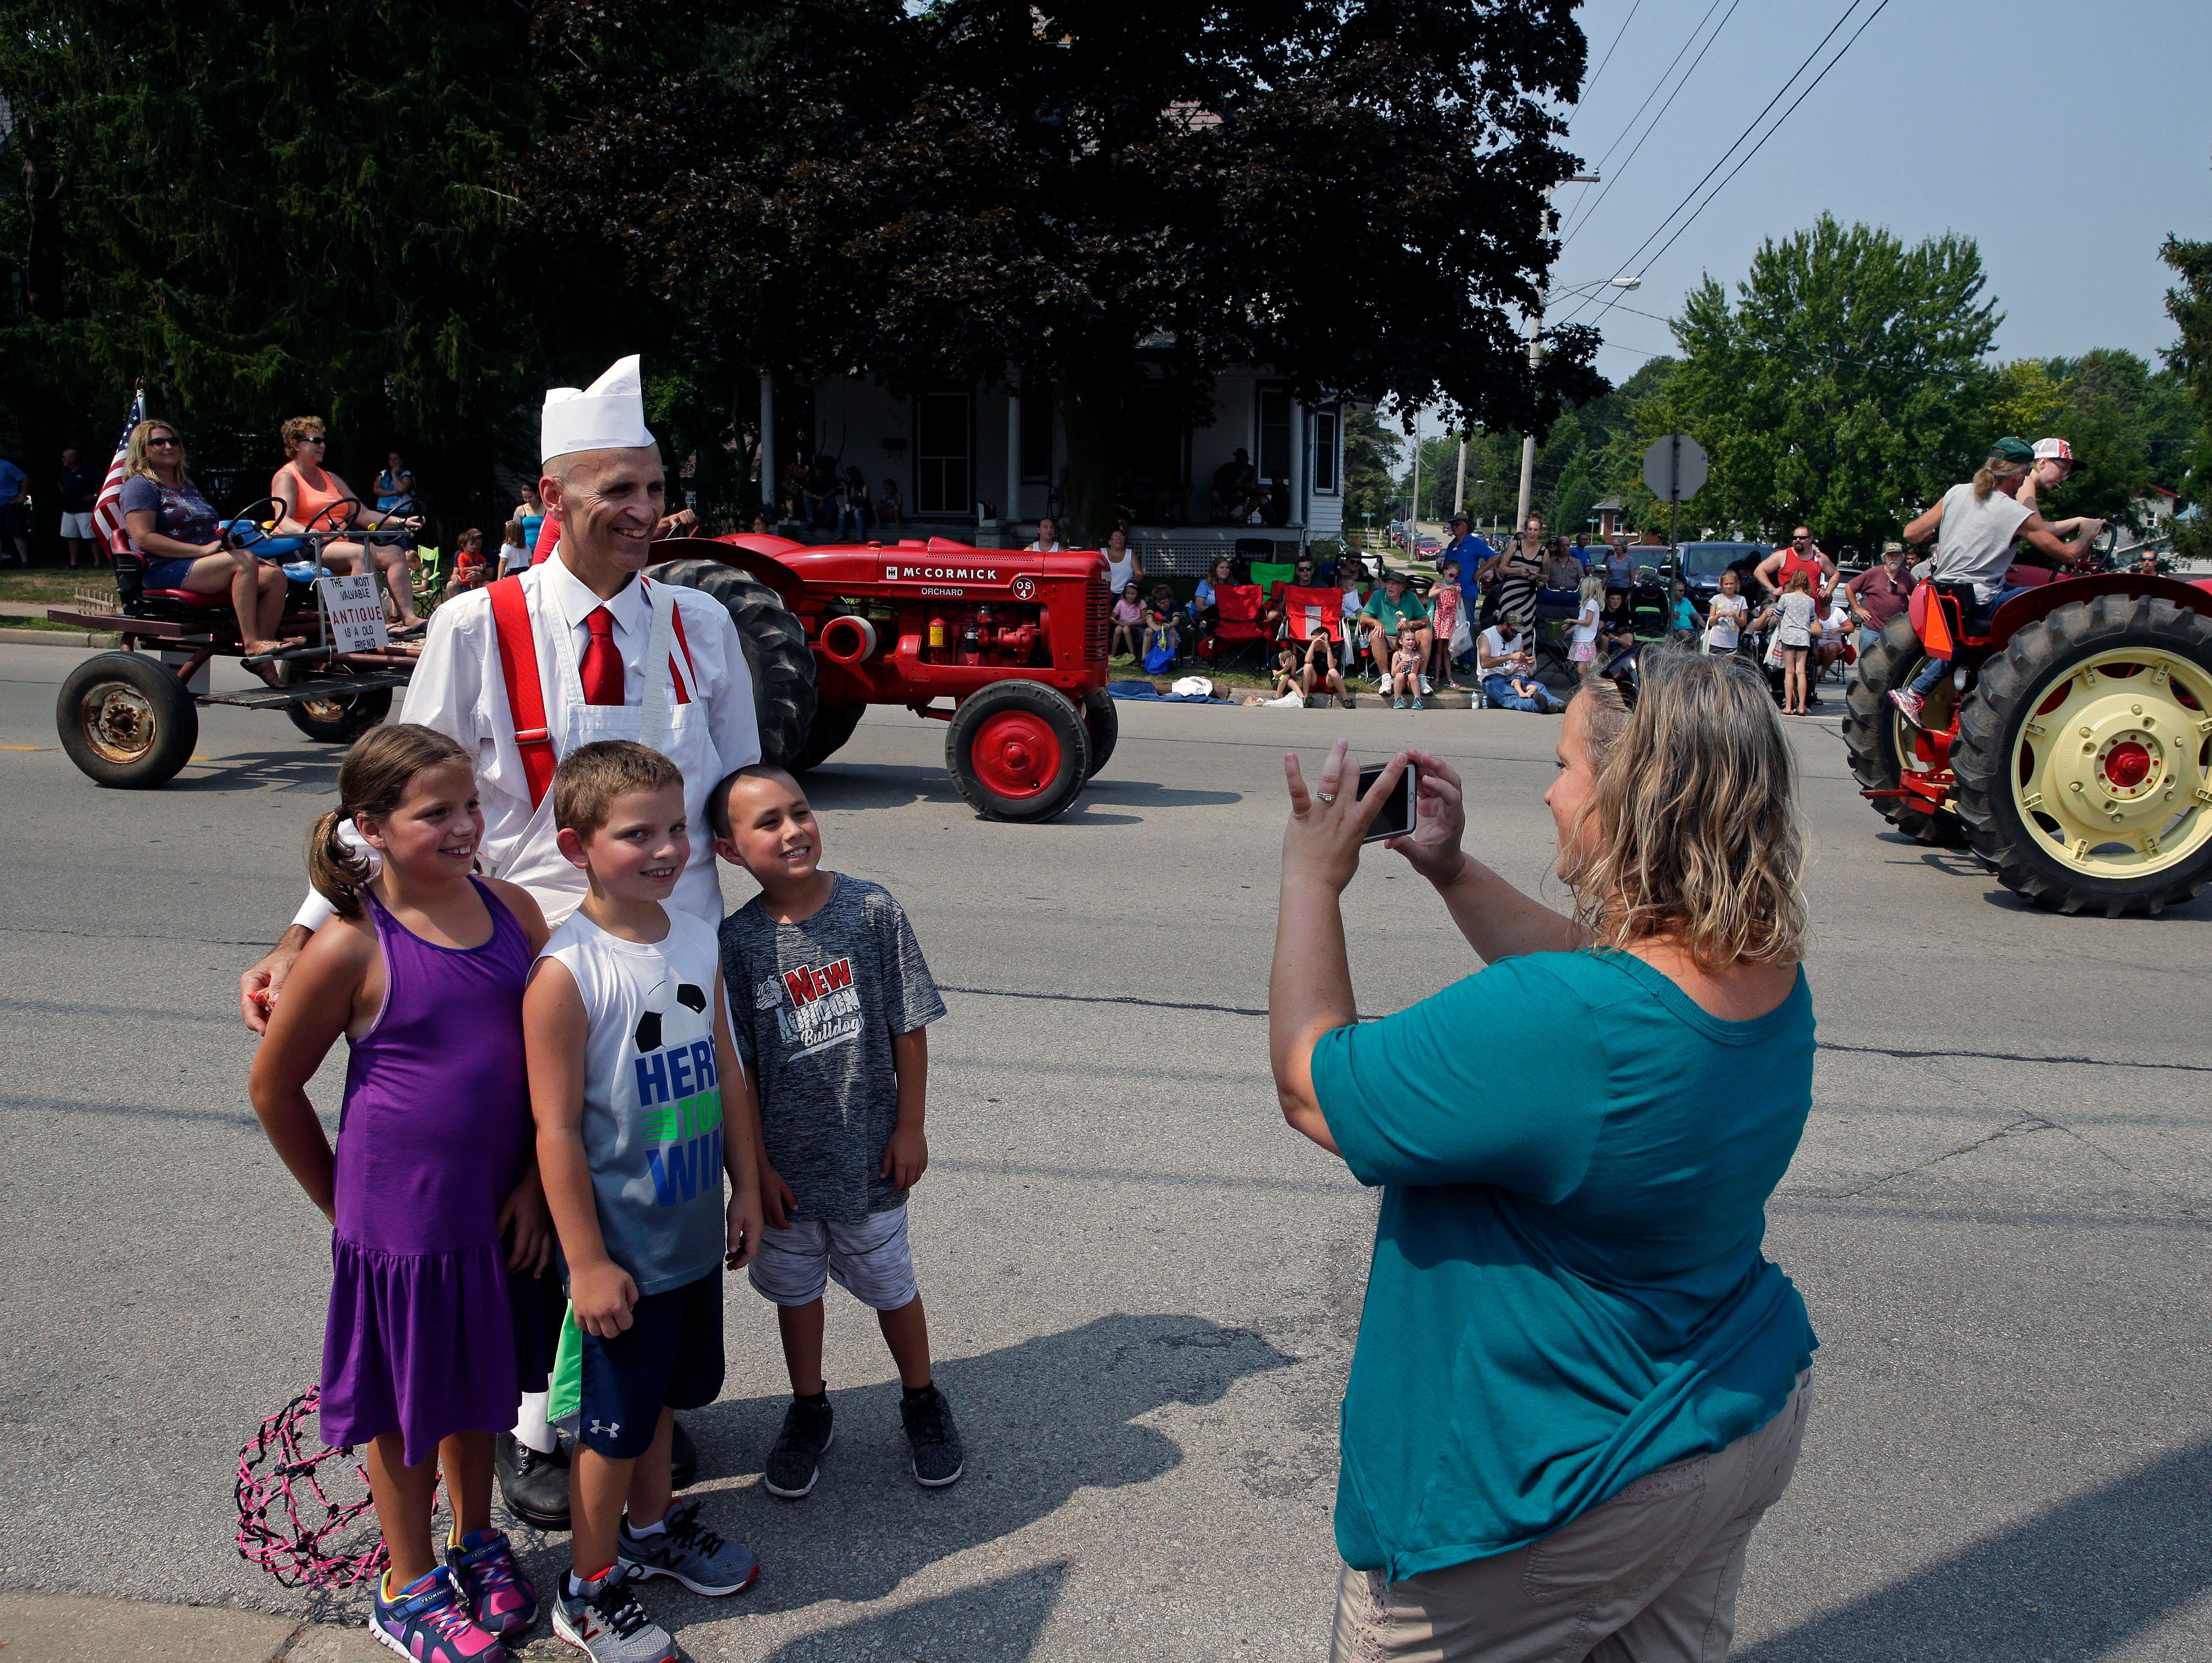 Jennifer Voigt gets a photo of Grace and Ethan Voigt and Jamison Wheelock with Hamburger Charlie during the Hamburger Parade at the 30th annual Burger Fest Saturday, August 11, 2018, in Seymour, Wis.